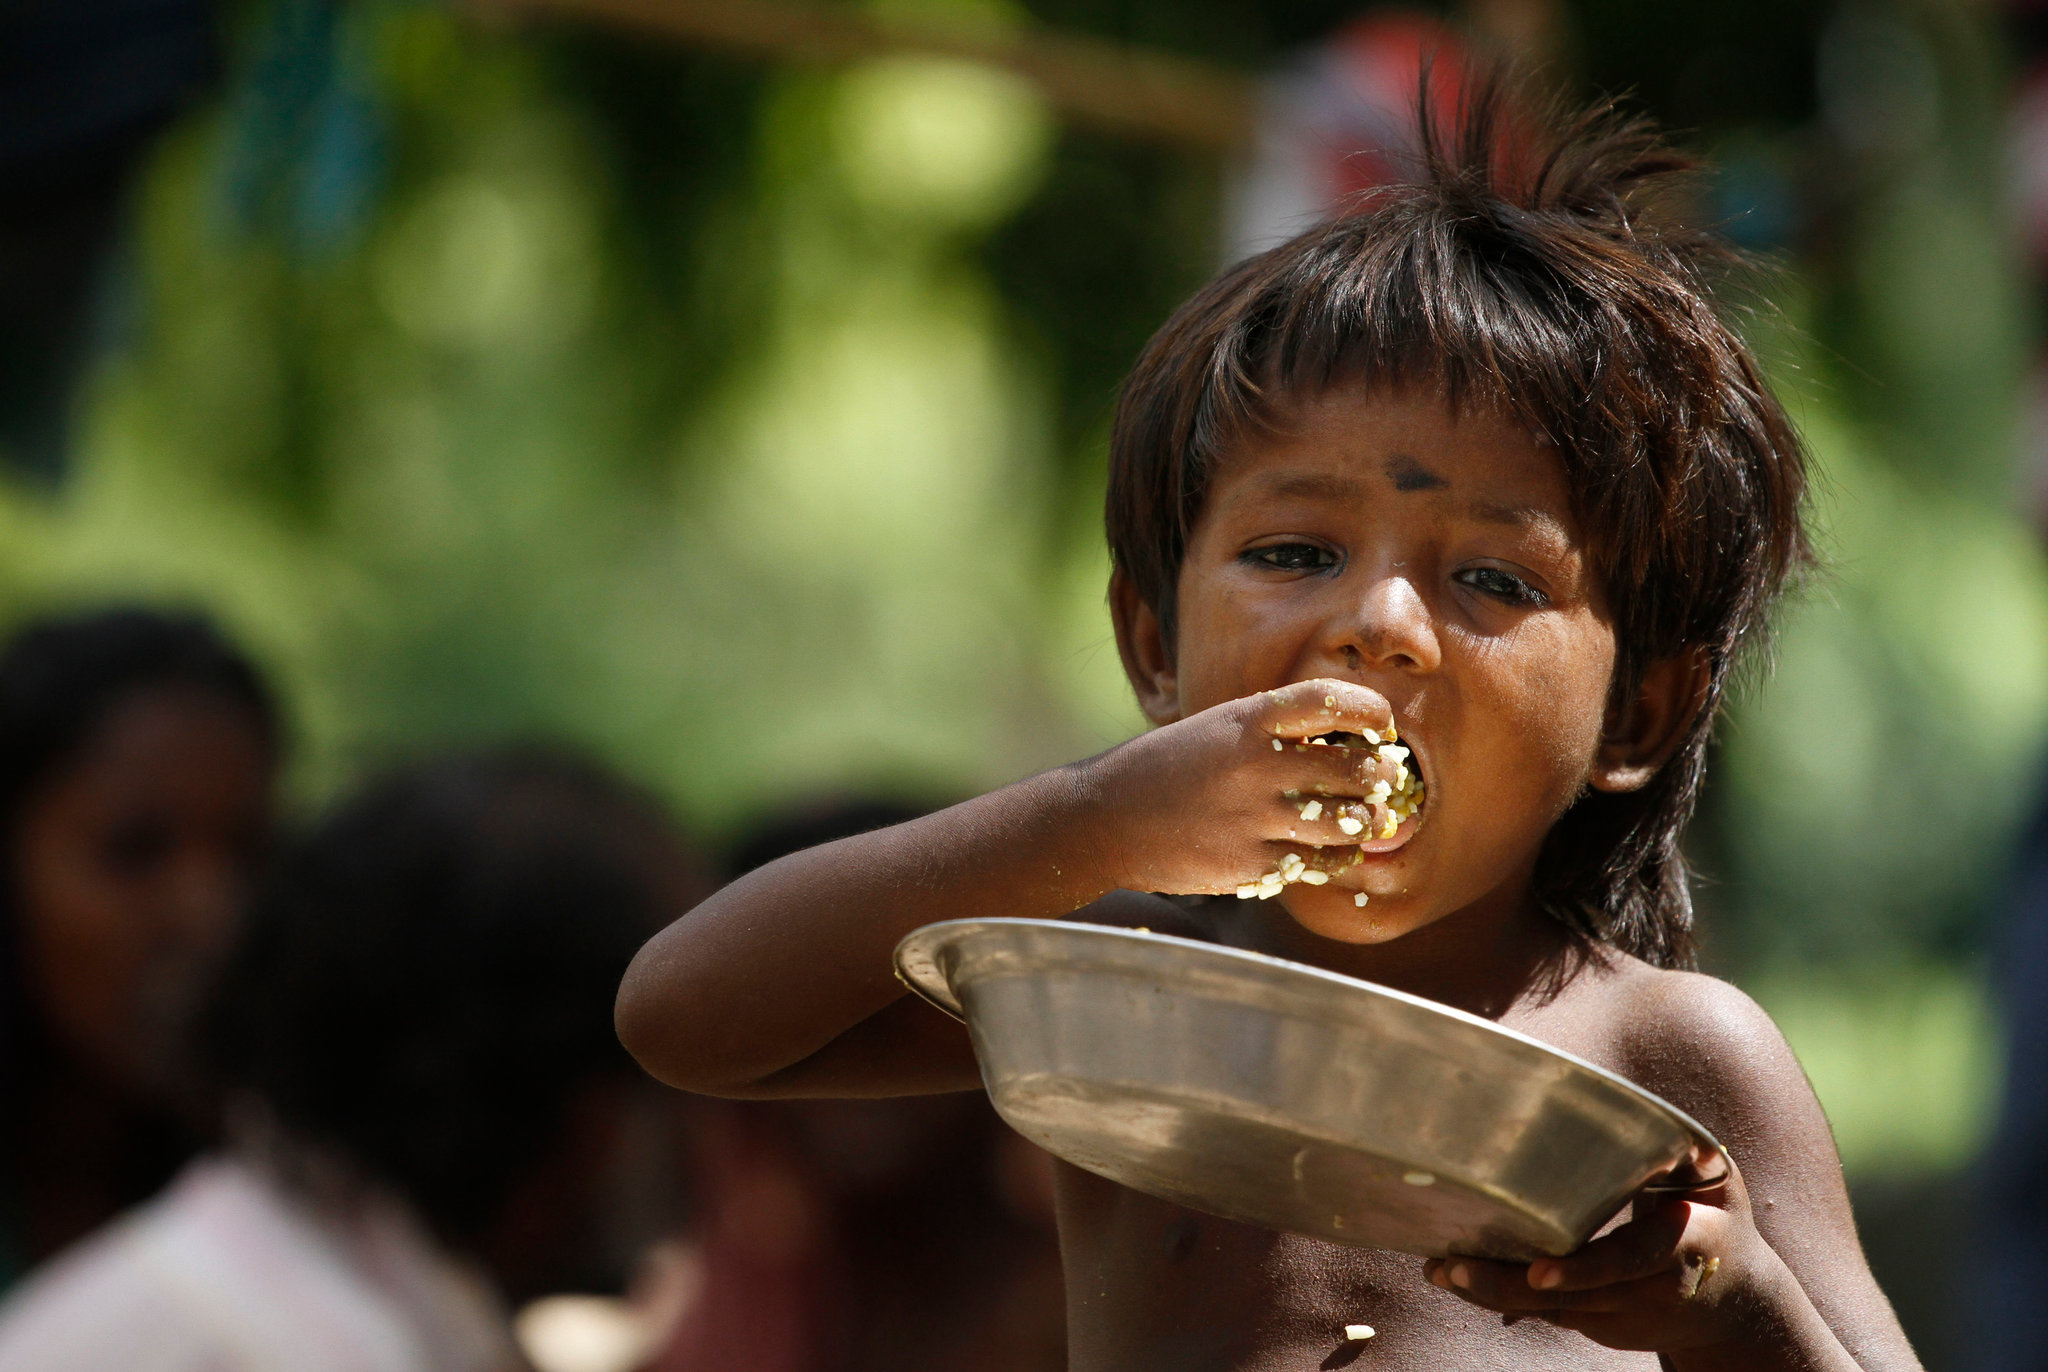 food security ink superjumbo jpg × comida  09 food security ink superjumbo jpg 2048×1372 comida hindu food security